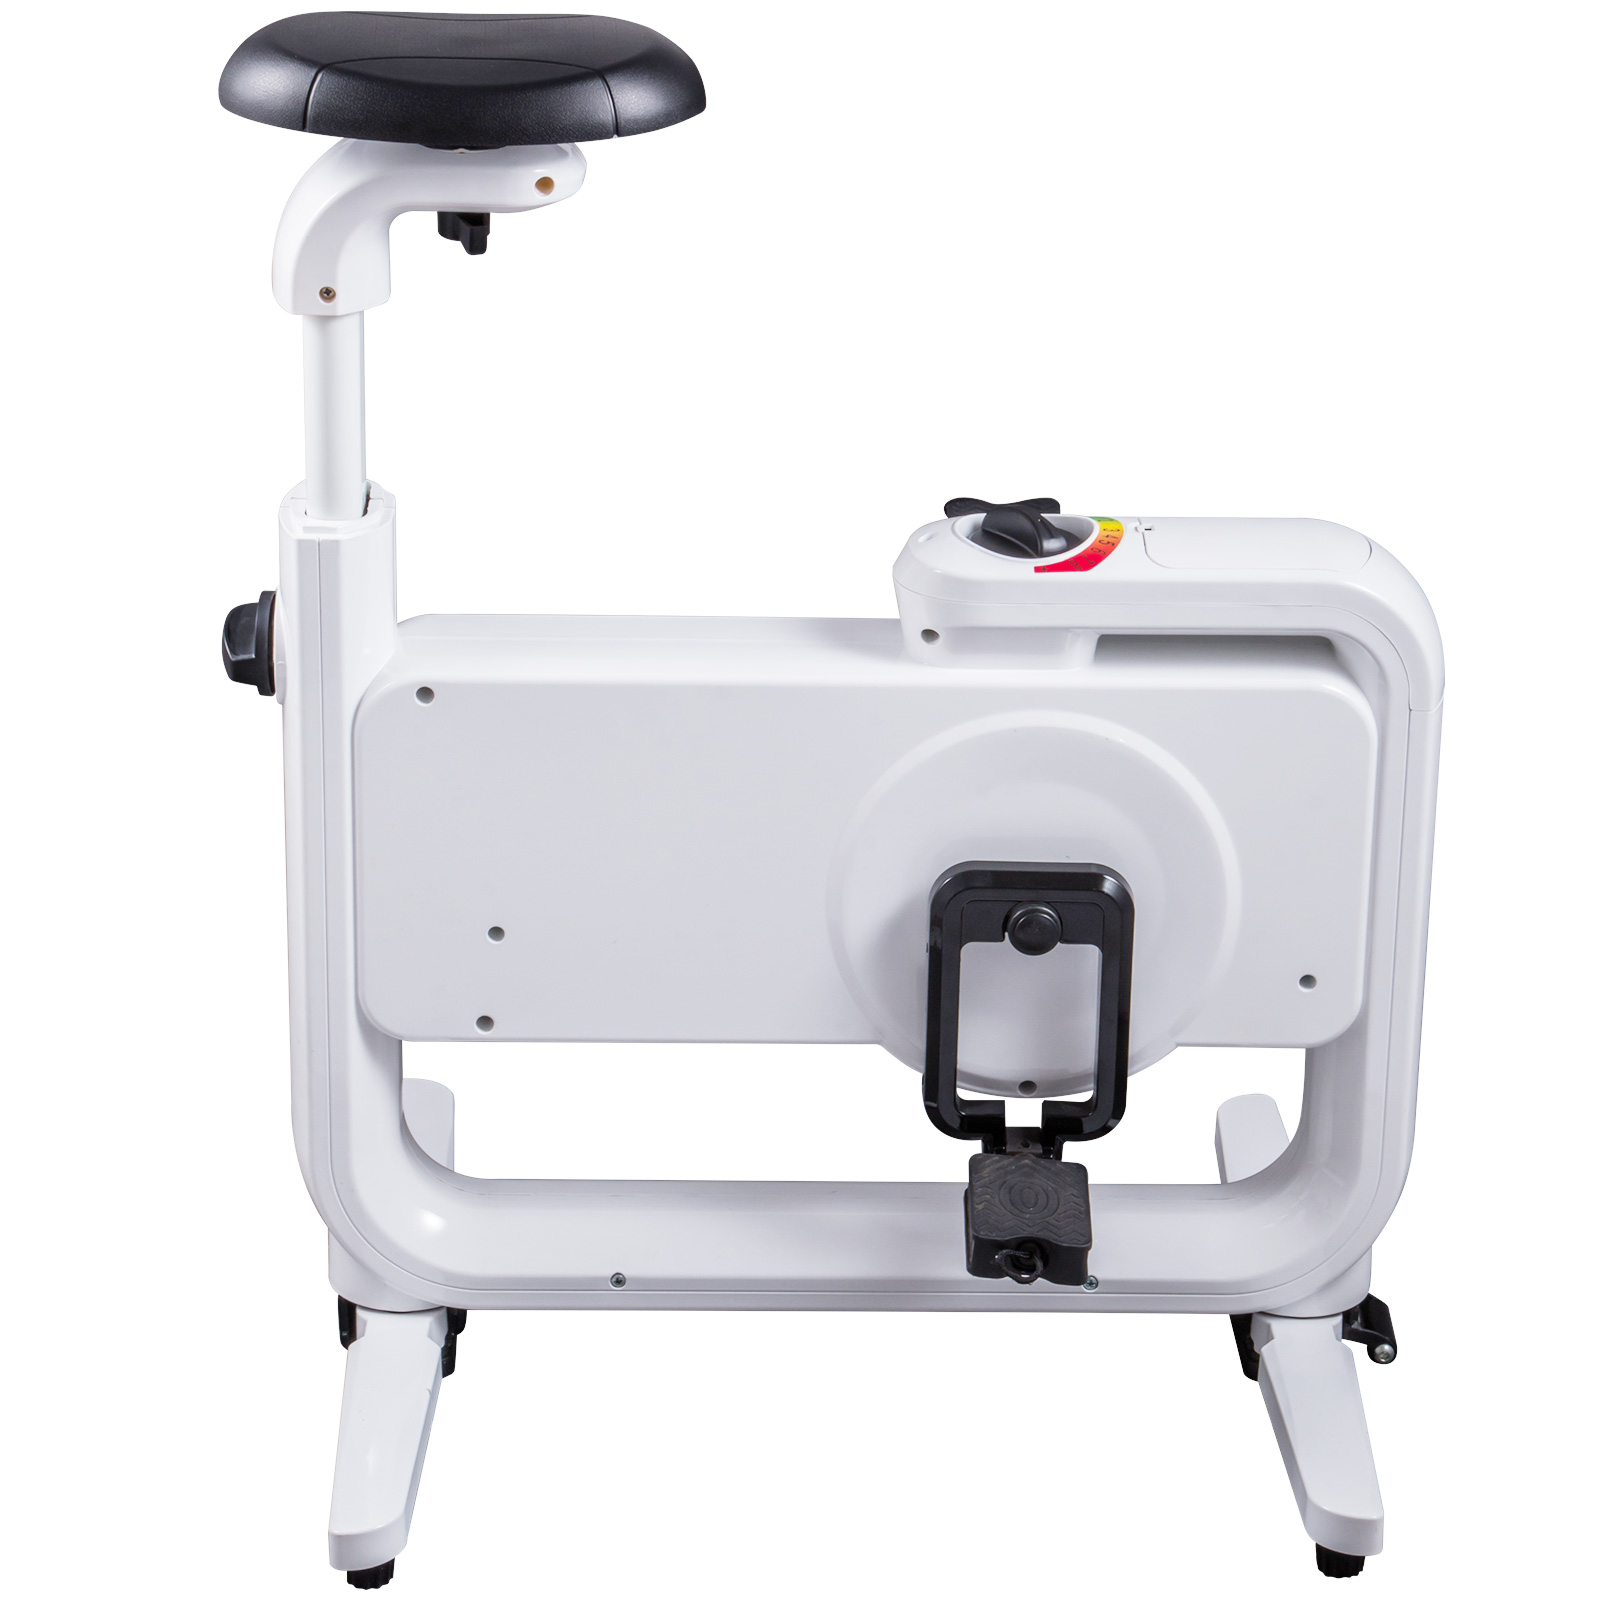 Multi-style-Magnetic-Exercise-Bike-office-Bicycle-under-Desk-Fitness-Cardio miniature 84